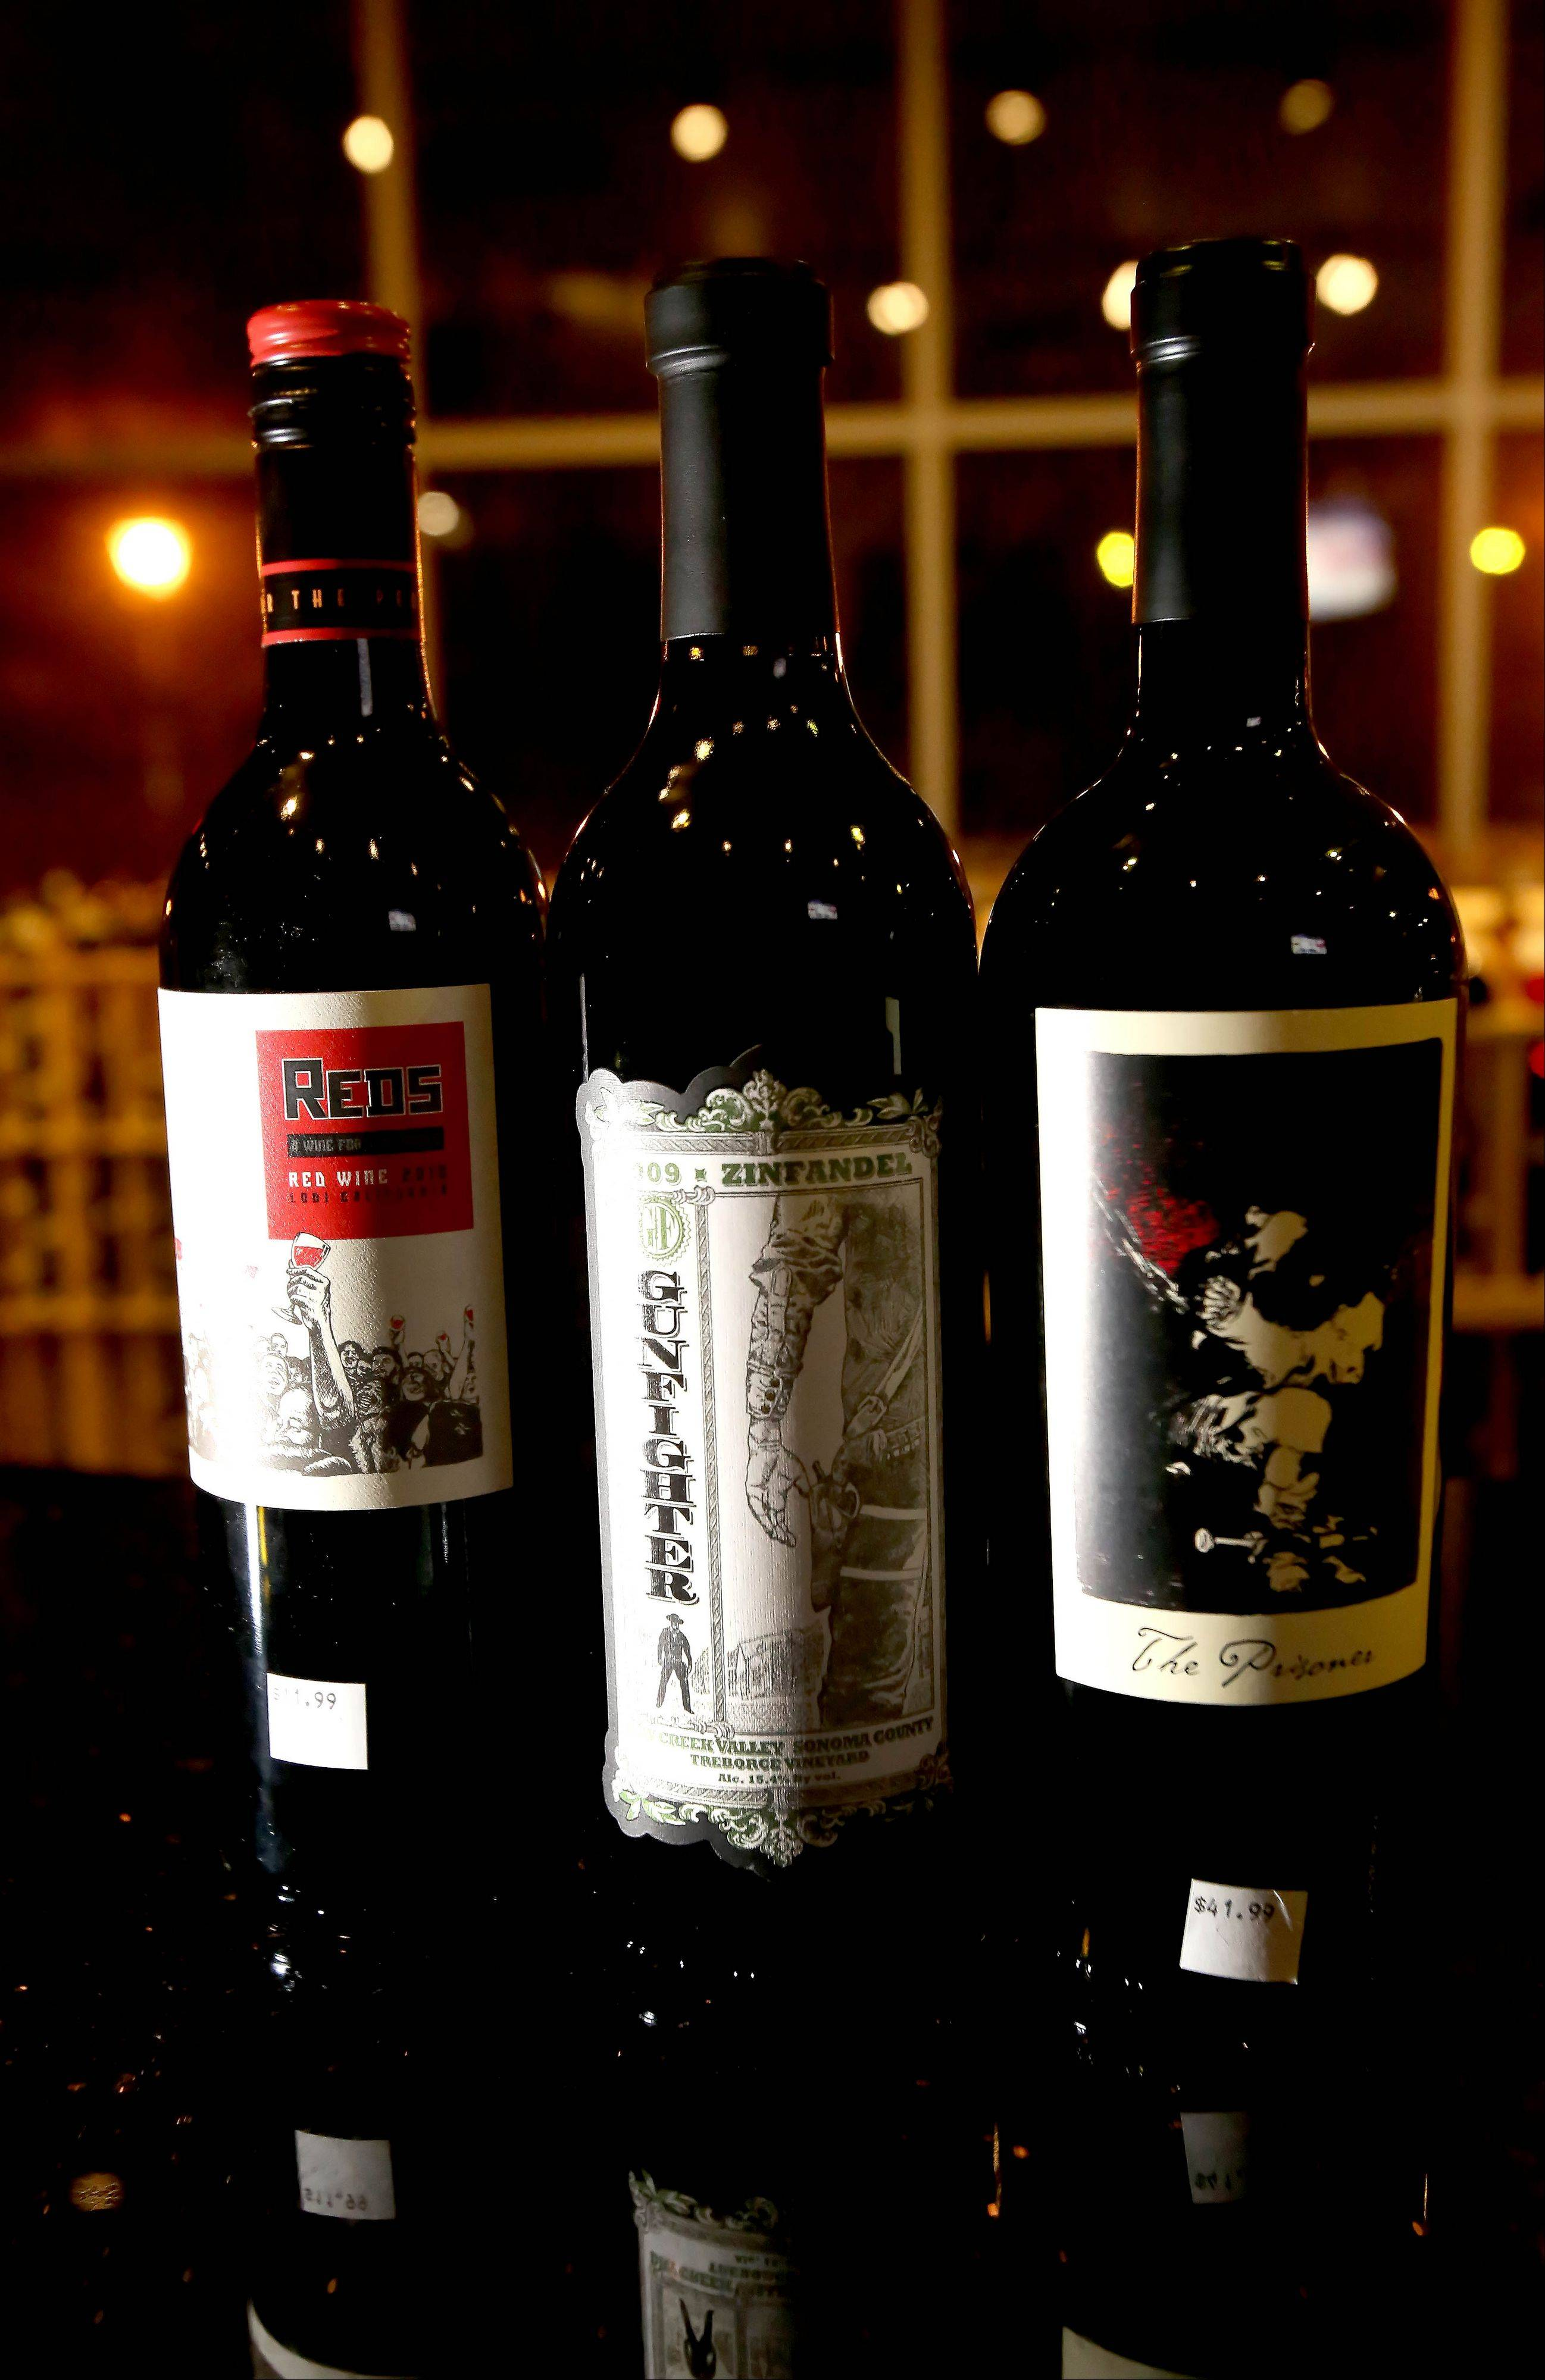 Wine lovers as well as novices will find a nice selection at The Vino Cellar.